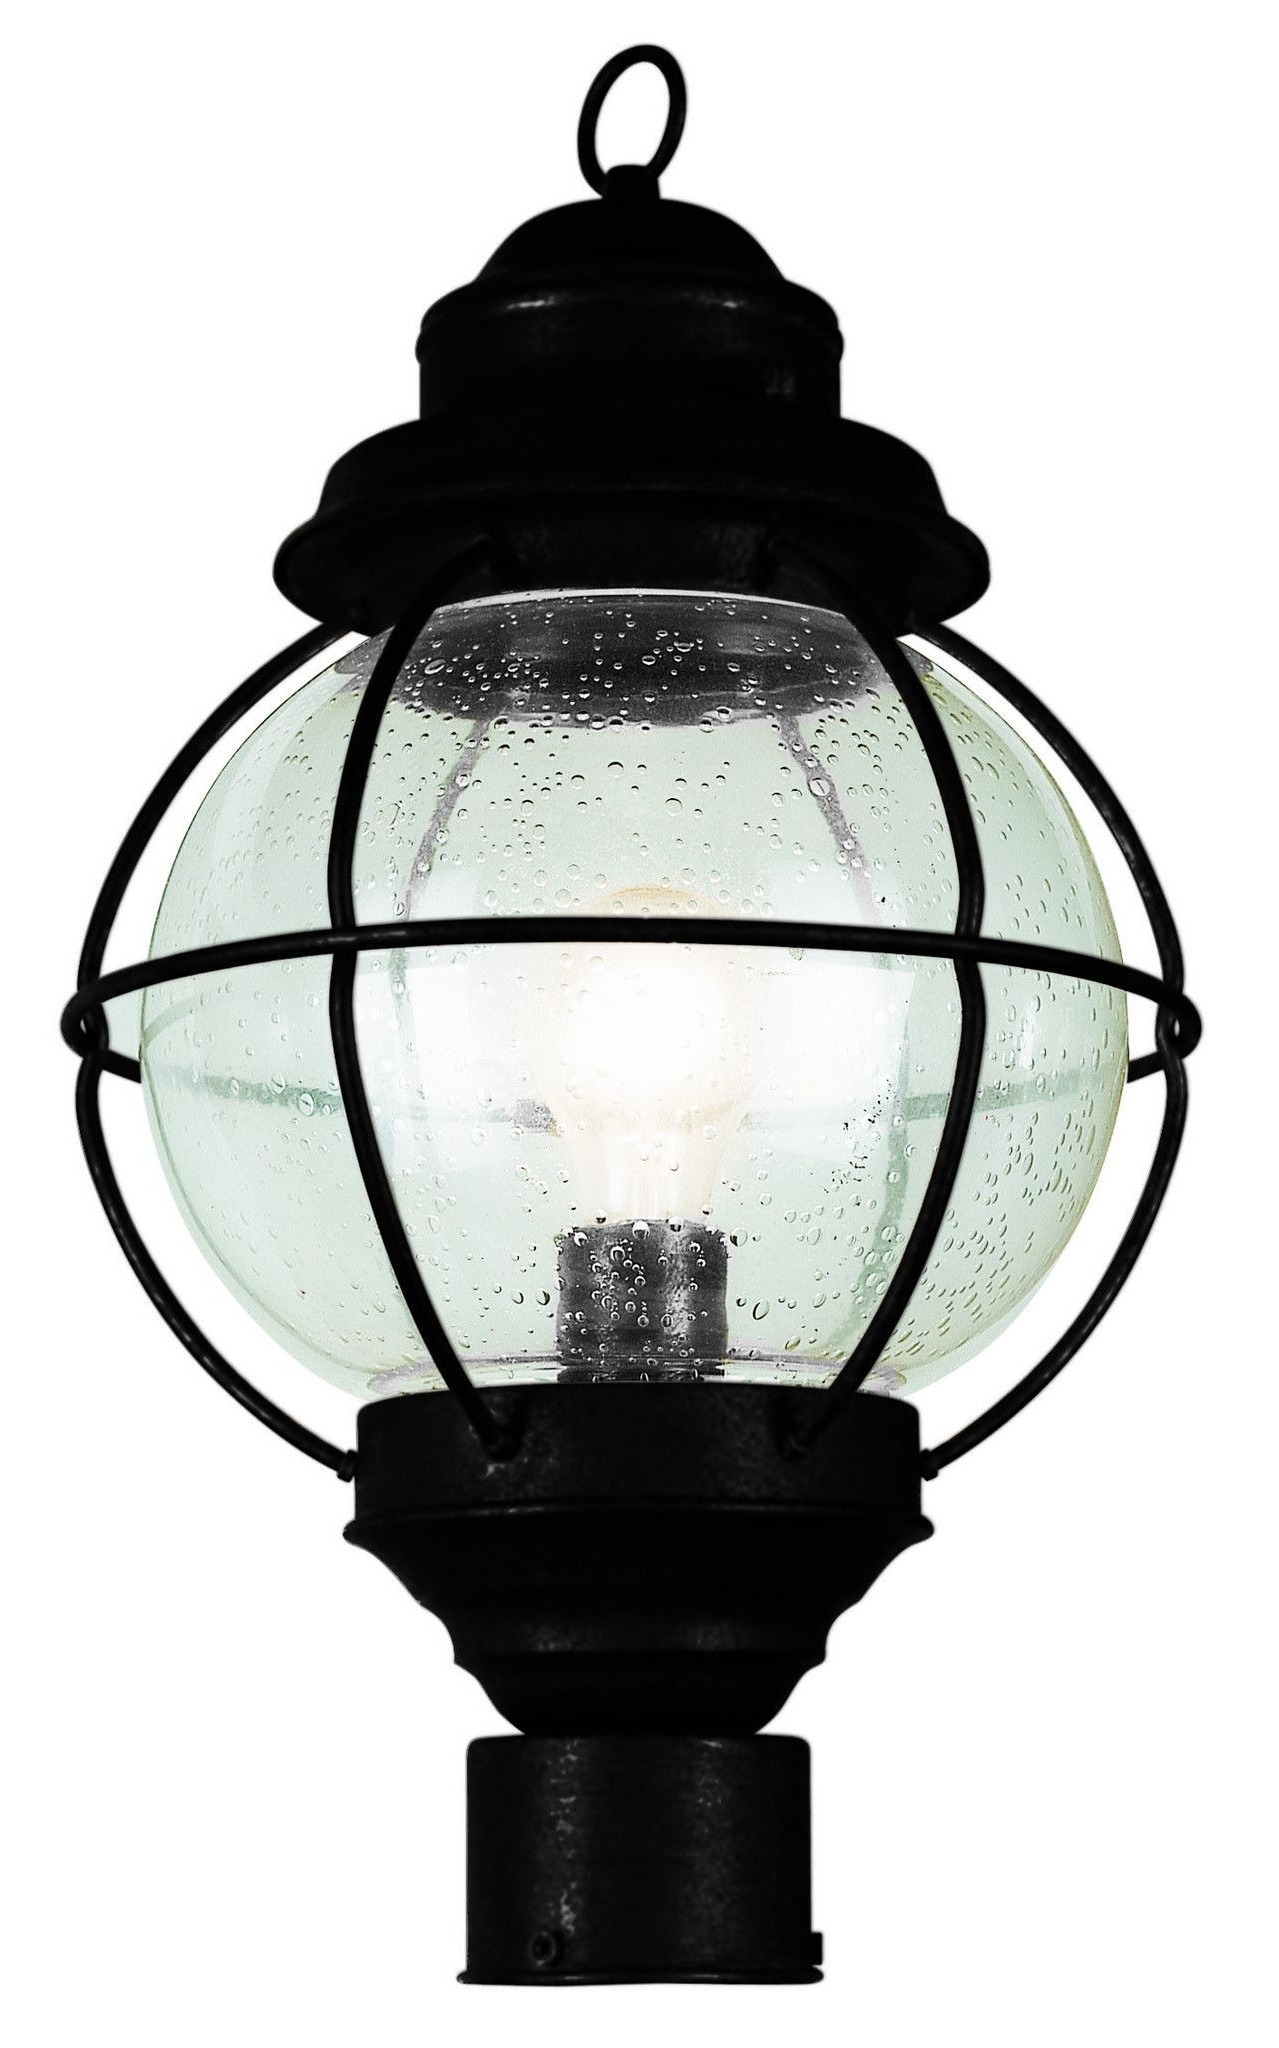 "Widely Used Trans Globe Lighting 69902 Bk Onion Lantern Post Top 15"" Black Regarding Outdoor Lighting Onion Lanterns (View 20 of 20)"